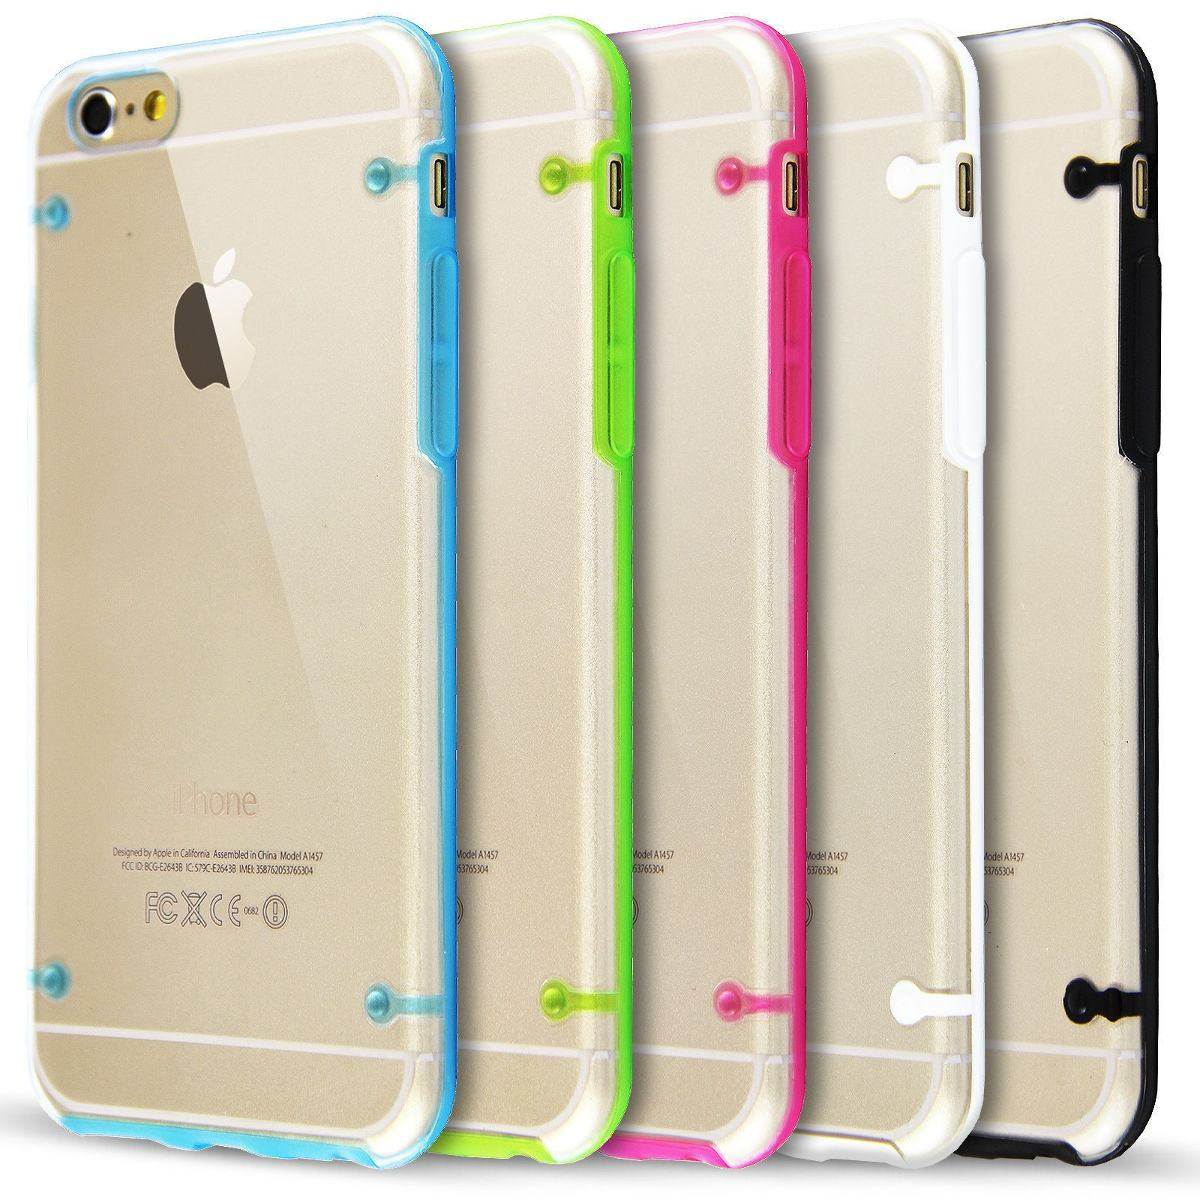 87550a41c14 Funda iPhone 4s 5 5s 6 6 Plus Ultrafina Transparente - $ 99,99 en ...